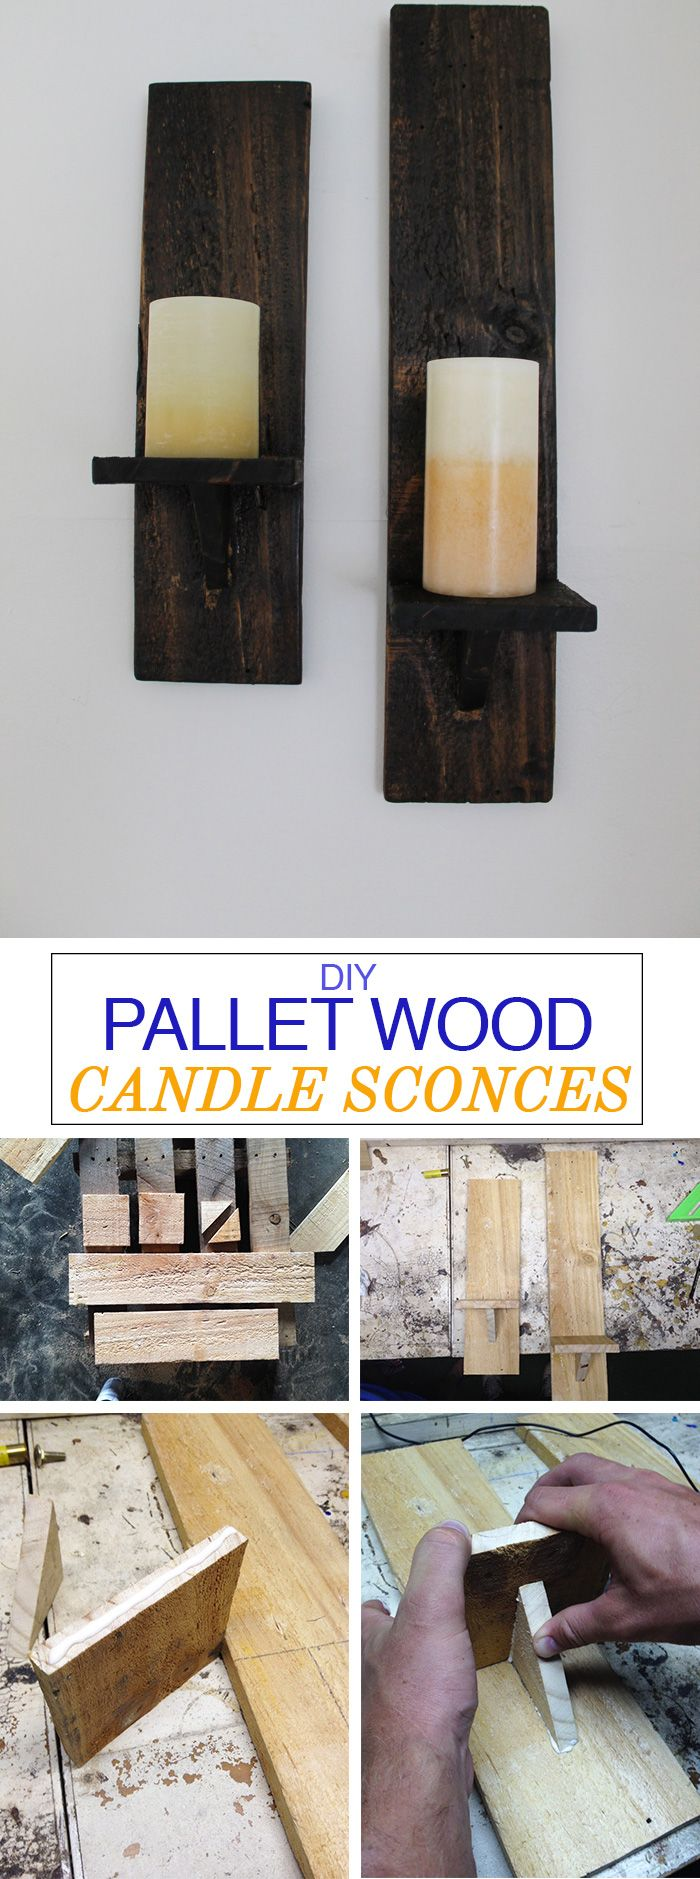 This is an easy project you can do with just a few supplies laying around the garage! Perfect for that blank wall in your home where you never knew what to hang.